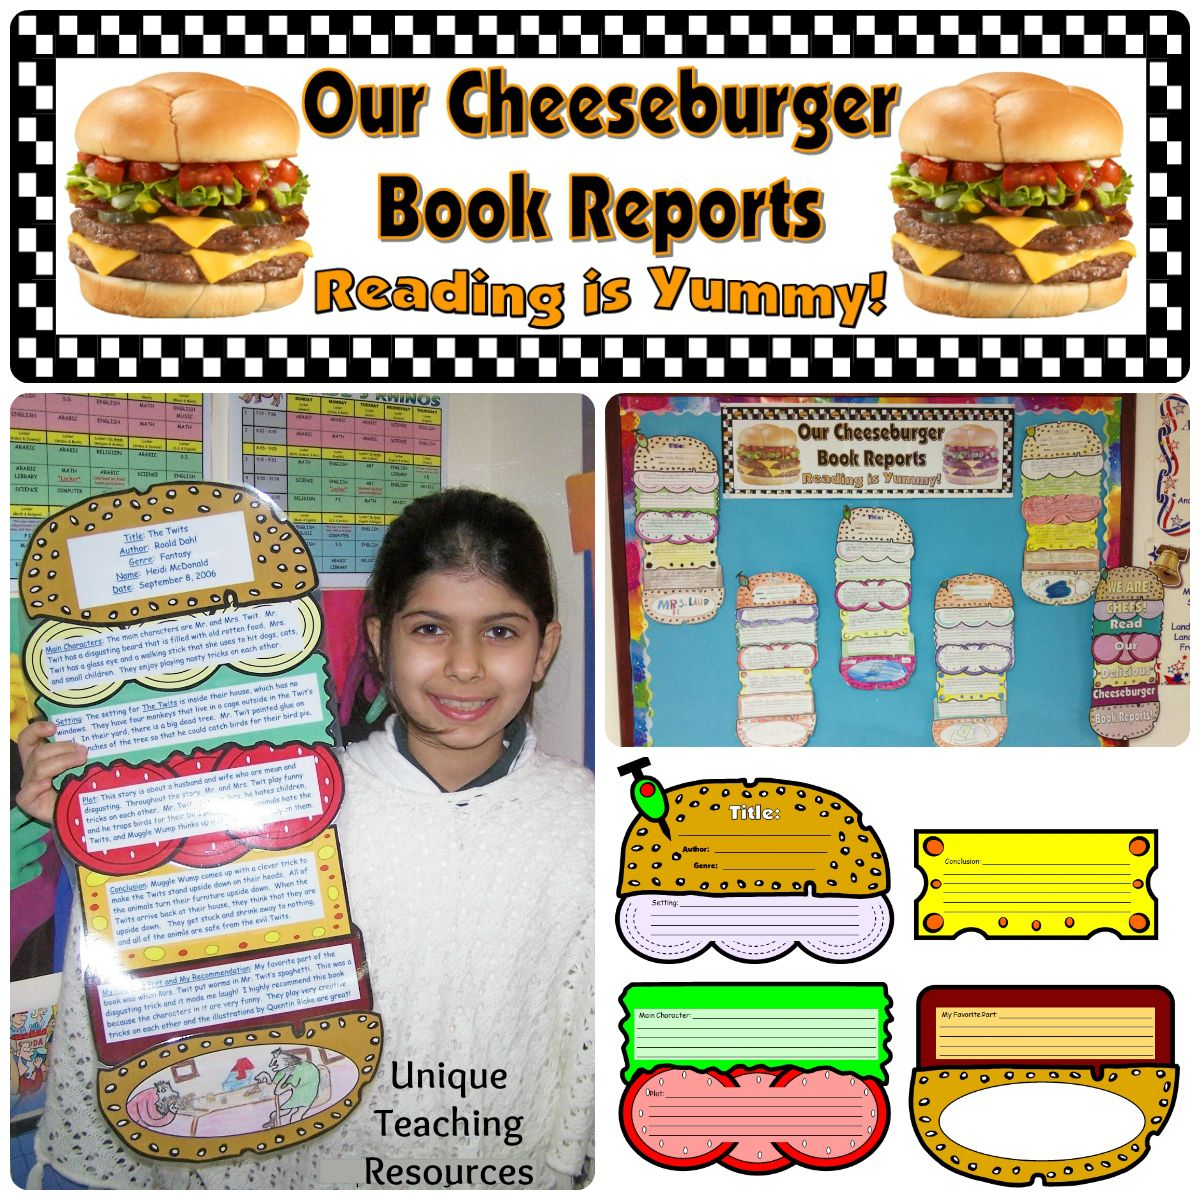 Cheeseburger Book Report Project Templates Printable Worksheets And Rubric